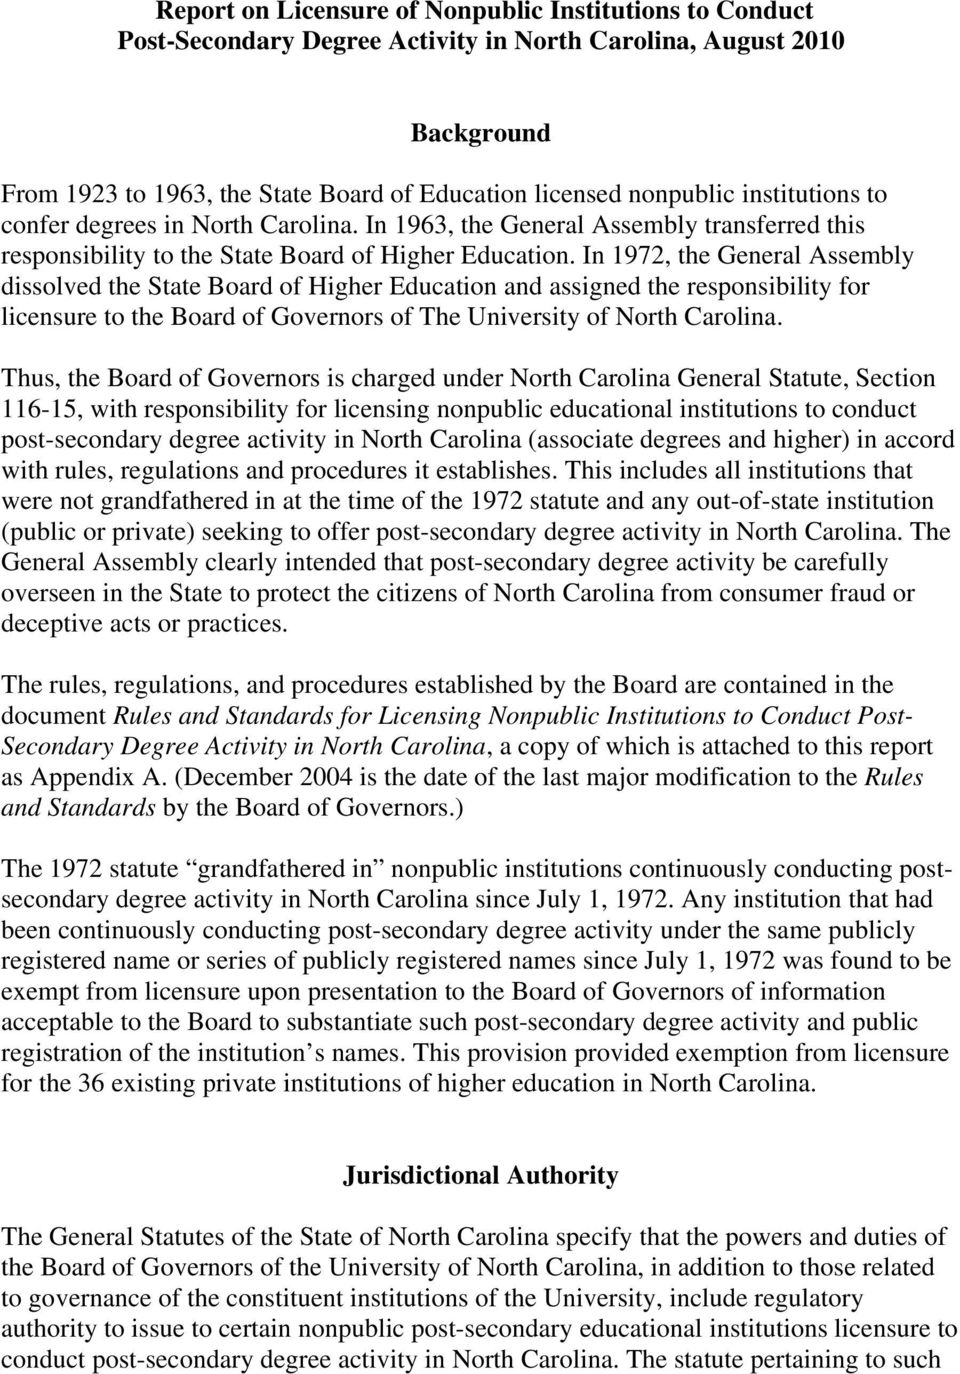 In 1972, the General Assembly dissolved the State Board of Higher Education and assigned the responsibility for licensure to the Board of Governors of The University of North Carolina.